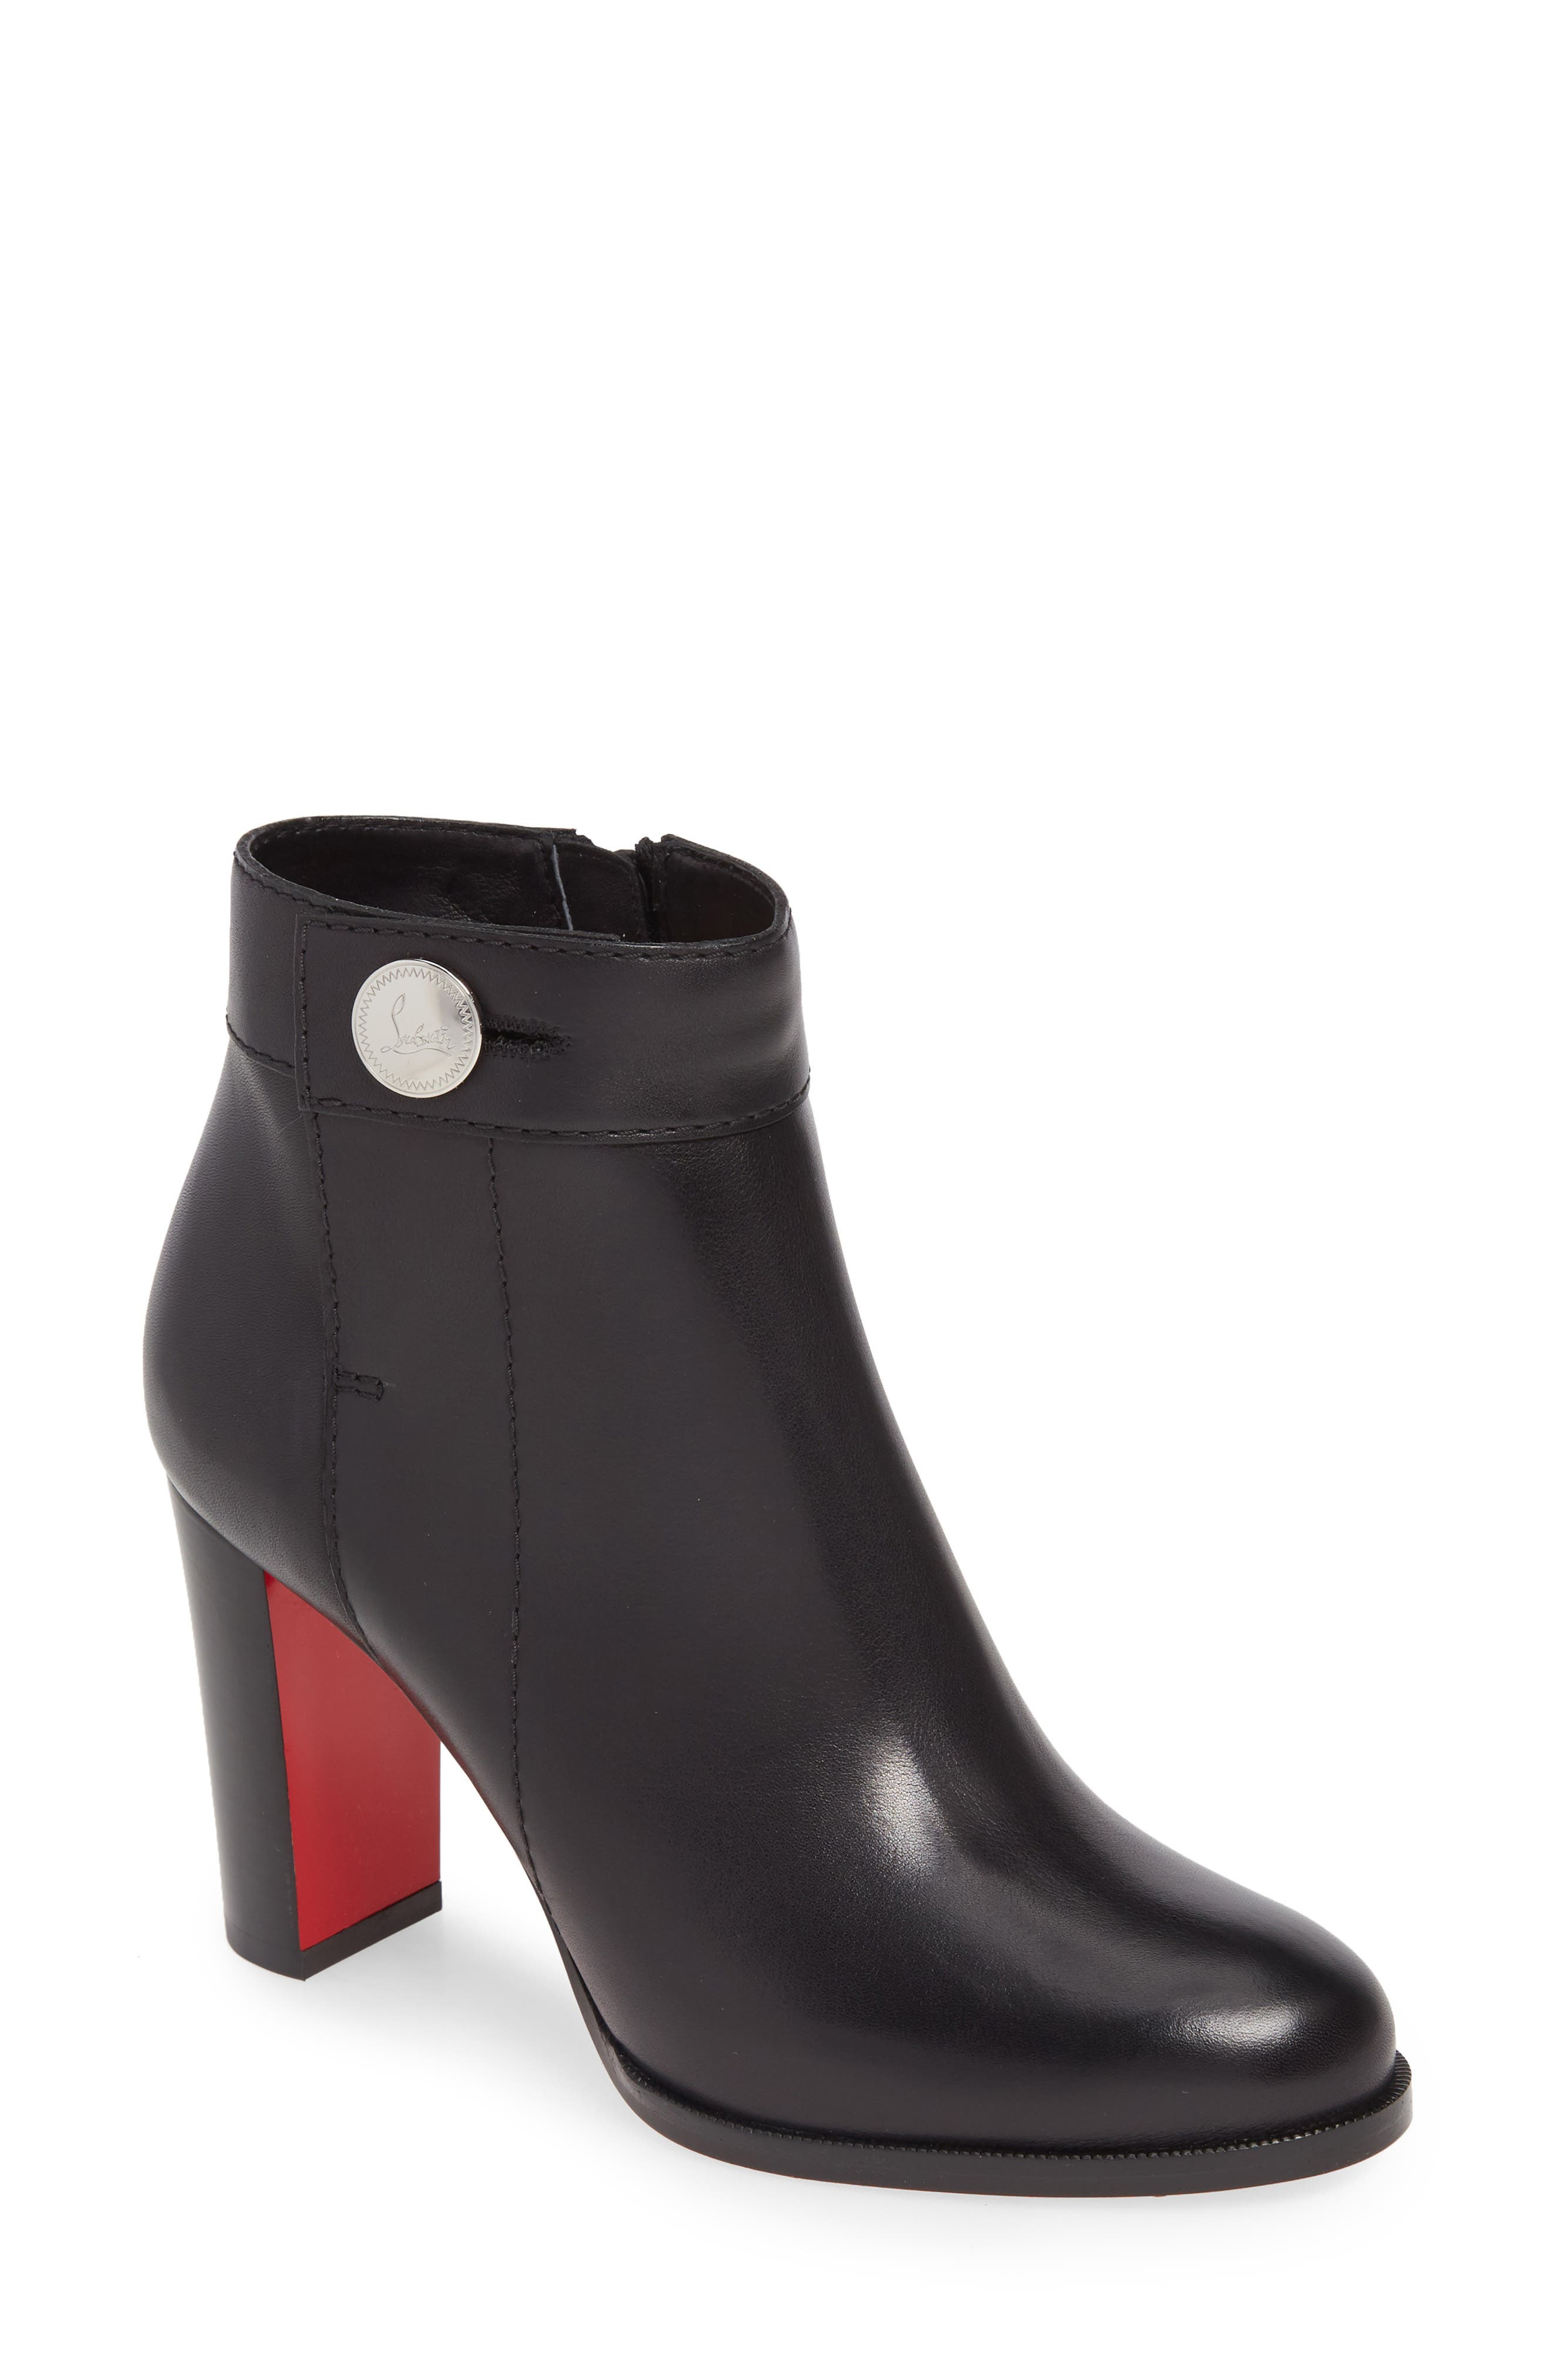 Christian Louboutin Janis Button Bootie - Black